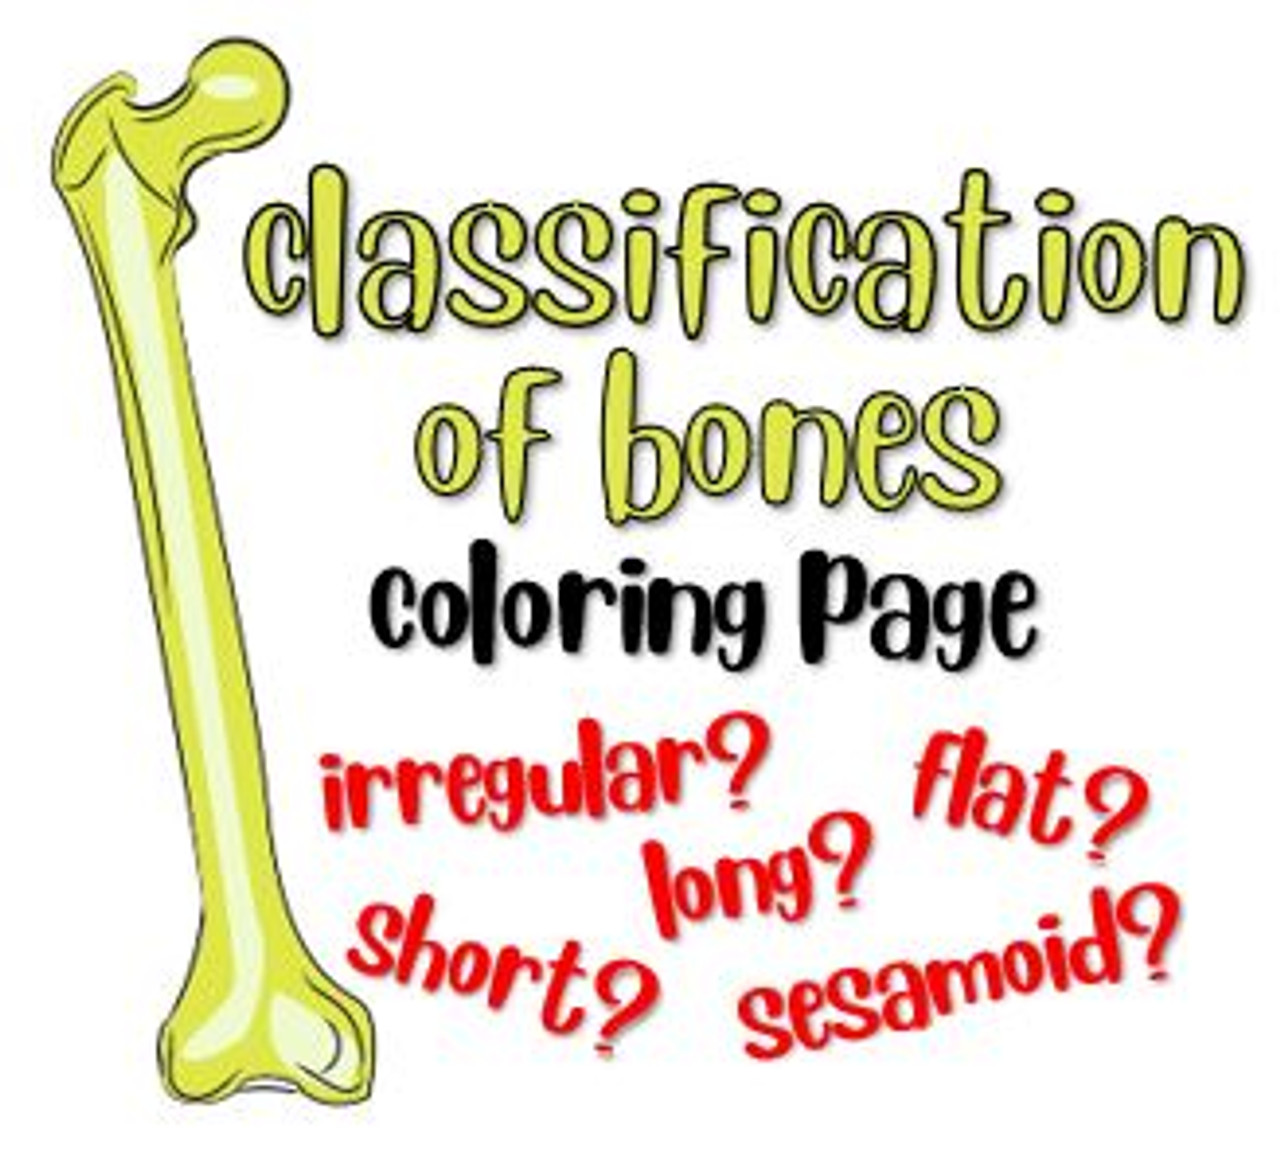 hight resolution of Classification of Bones Coloring Page - Amped Up Learning